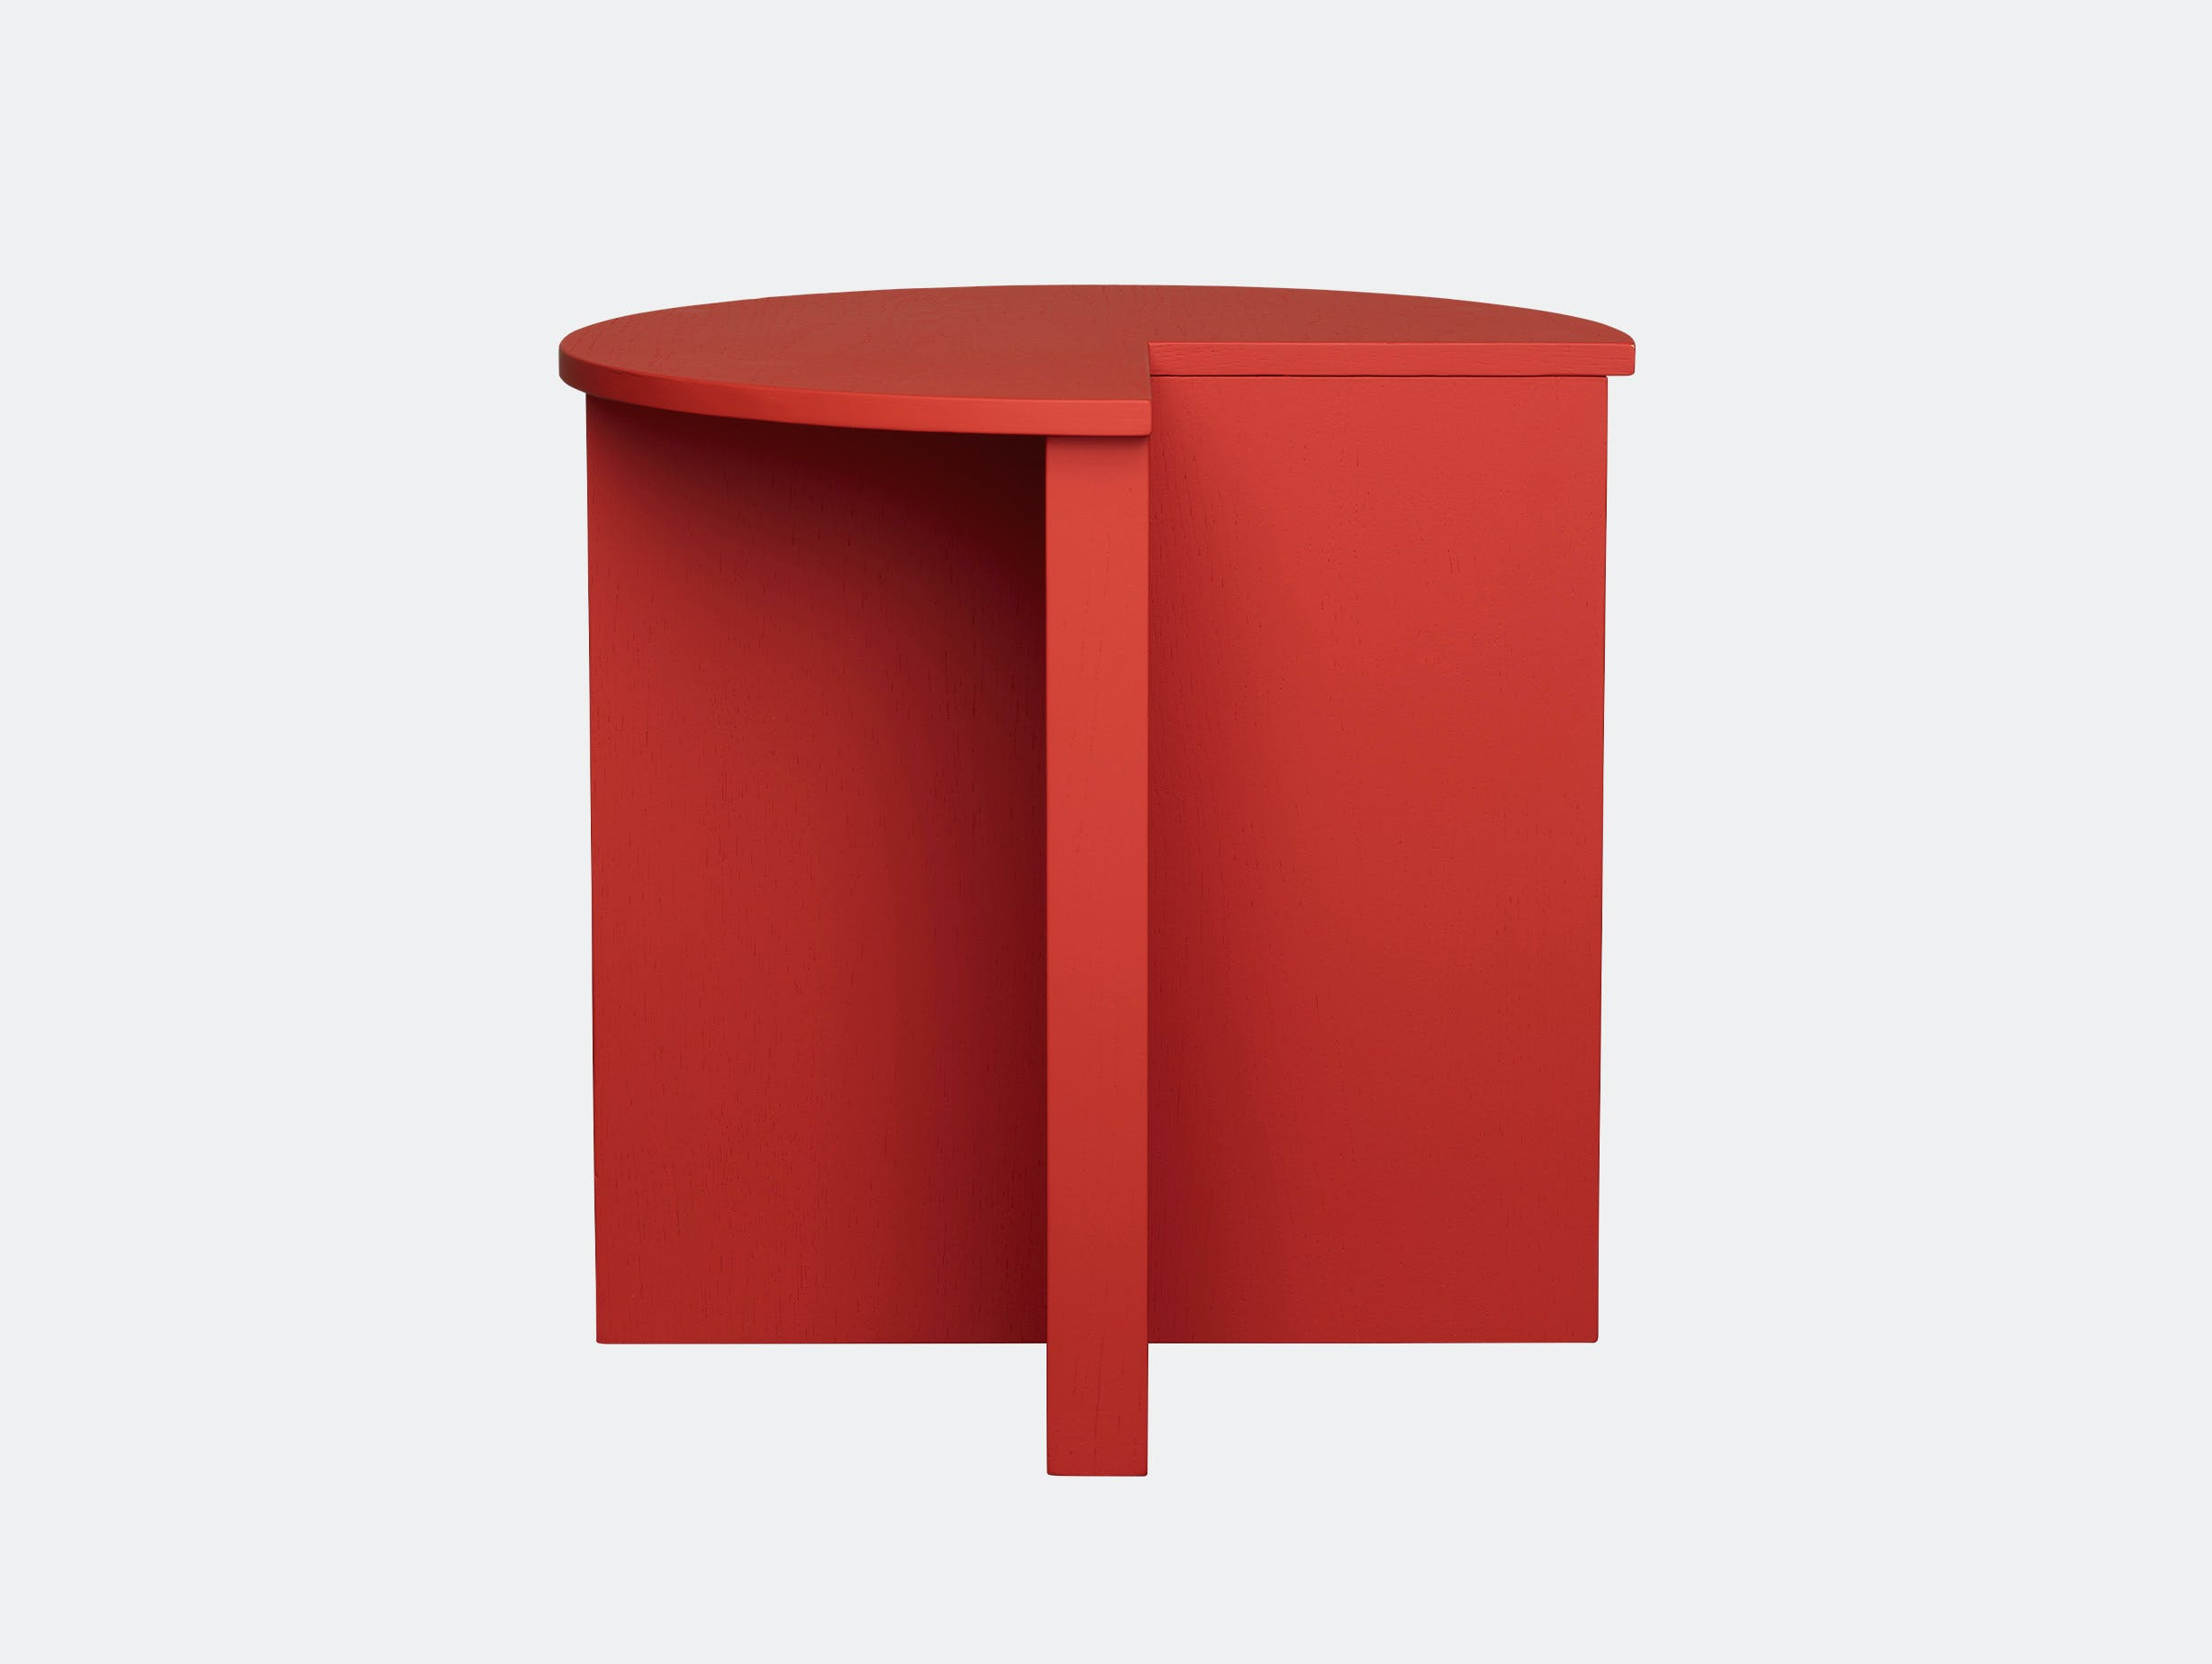 Fogia supersolid object 2 red 1